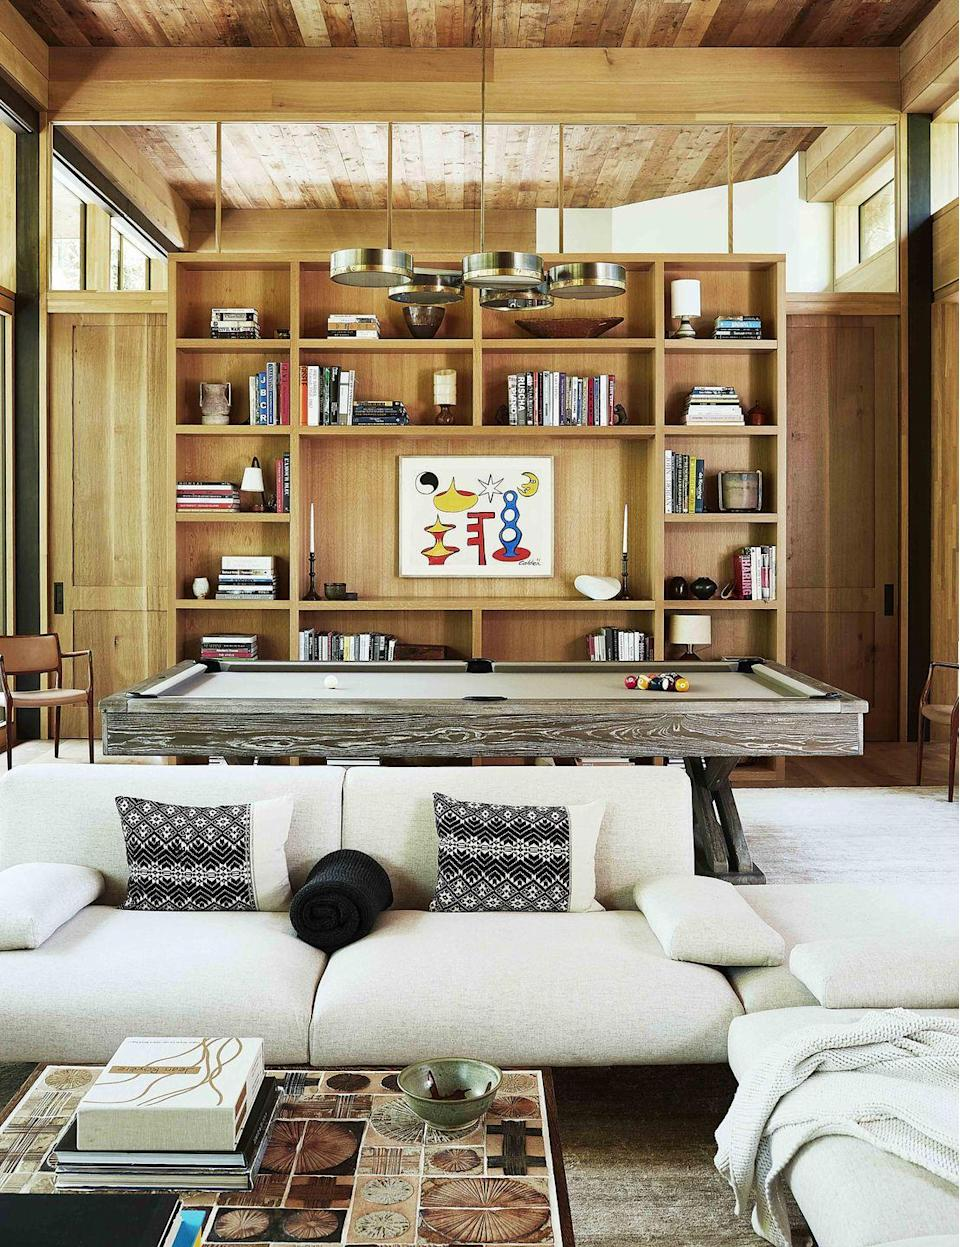 "<p>Well-curated bookshelves exude a sense of class, but there's more to this great room by <a href=""https://www.veranda.com/decorating-ideas/house-tours/a32721436/cliff-fong-north-carolina-lodge/"" rel=""nofollow noopener"" target=""_blank"" data-ylk=""slk:Cliff Fong"" class=""link rapid-noclick-resp"">Cliff Fong</a> than meets the eye. The middle panel actually disappears to reveal a secret walk-in bar behind the oak bookcase, making bar clutter a thing of the past. The artwork is by the late Alexander Calder.</p>"